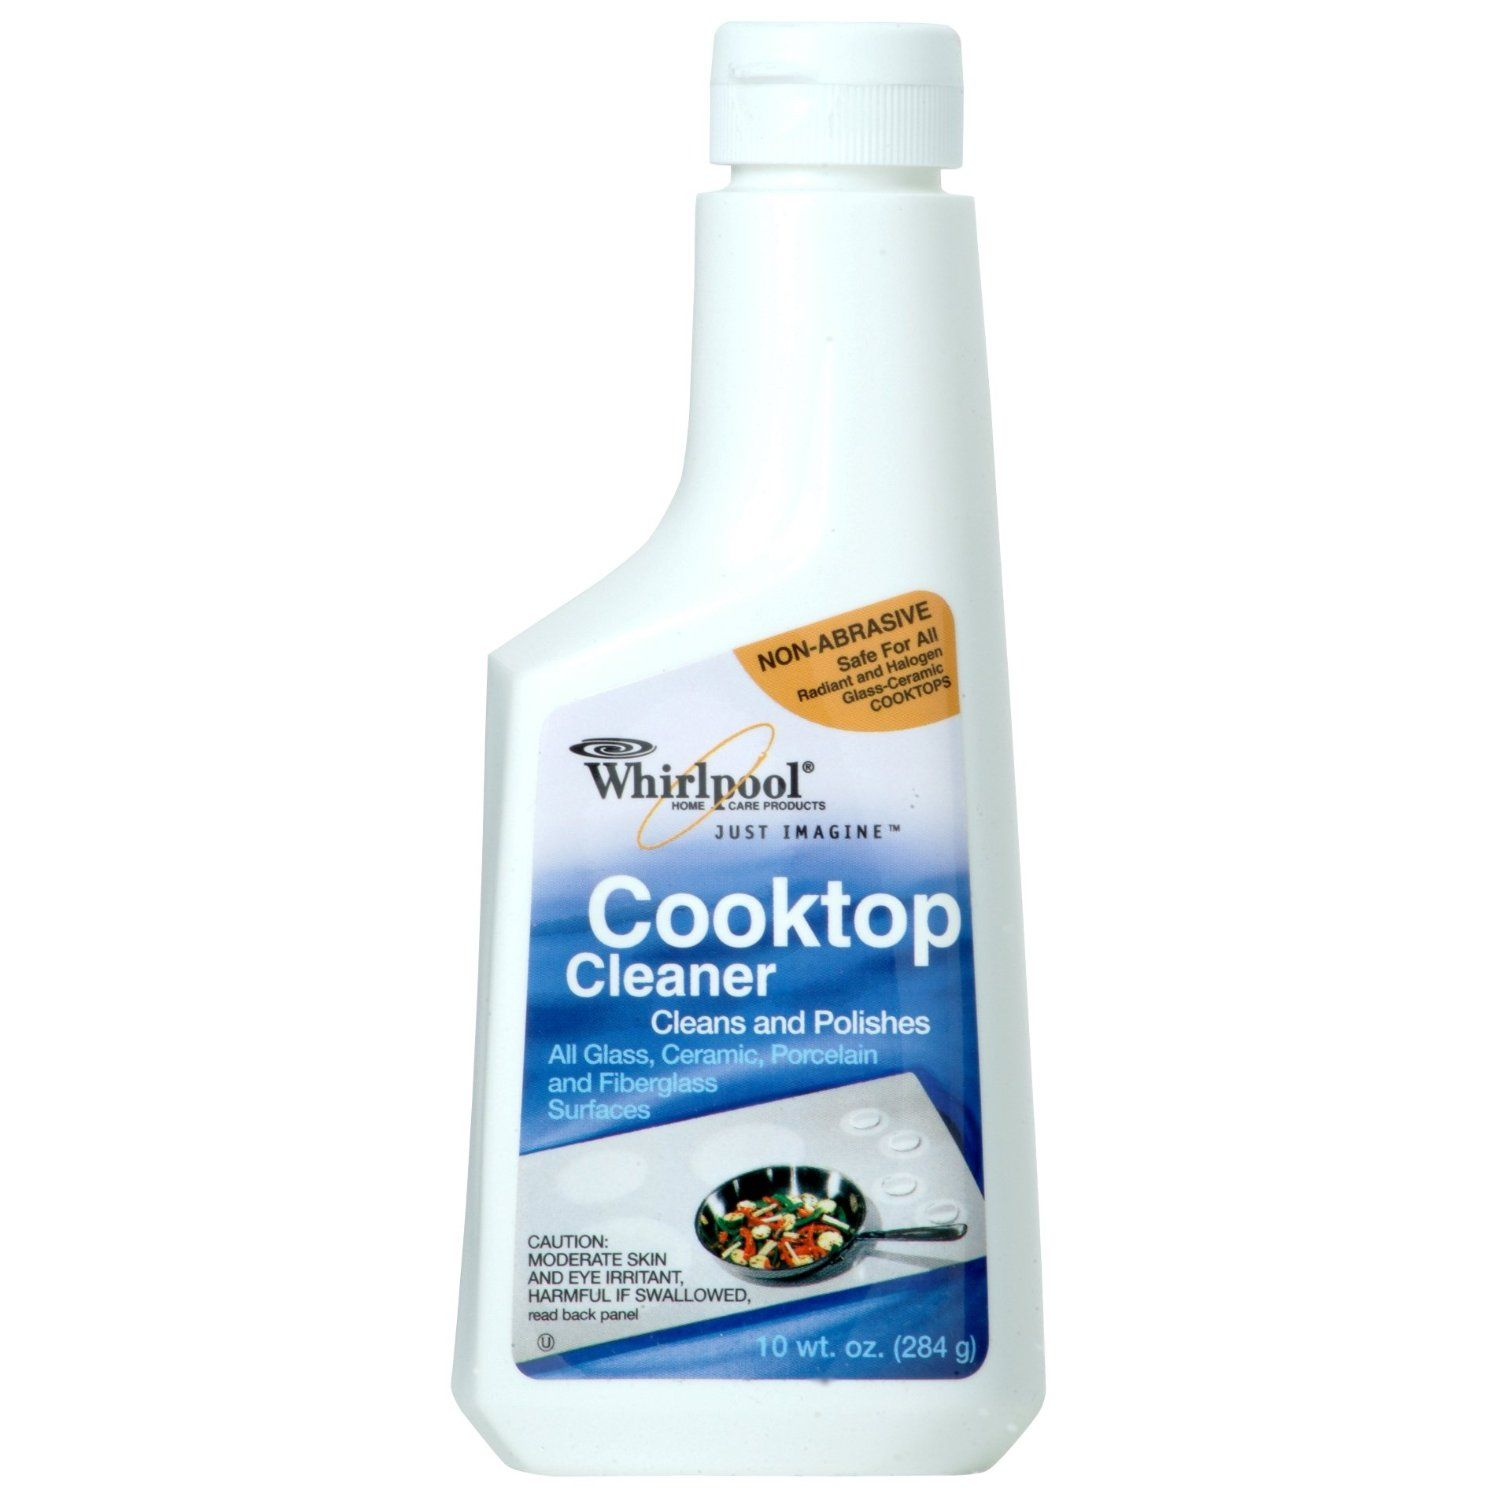 Whirlpool 31464 Cooktop Cleaner, 10-Ounce | appliances | Pinterest